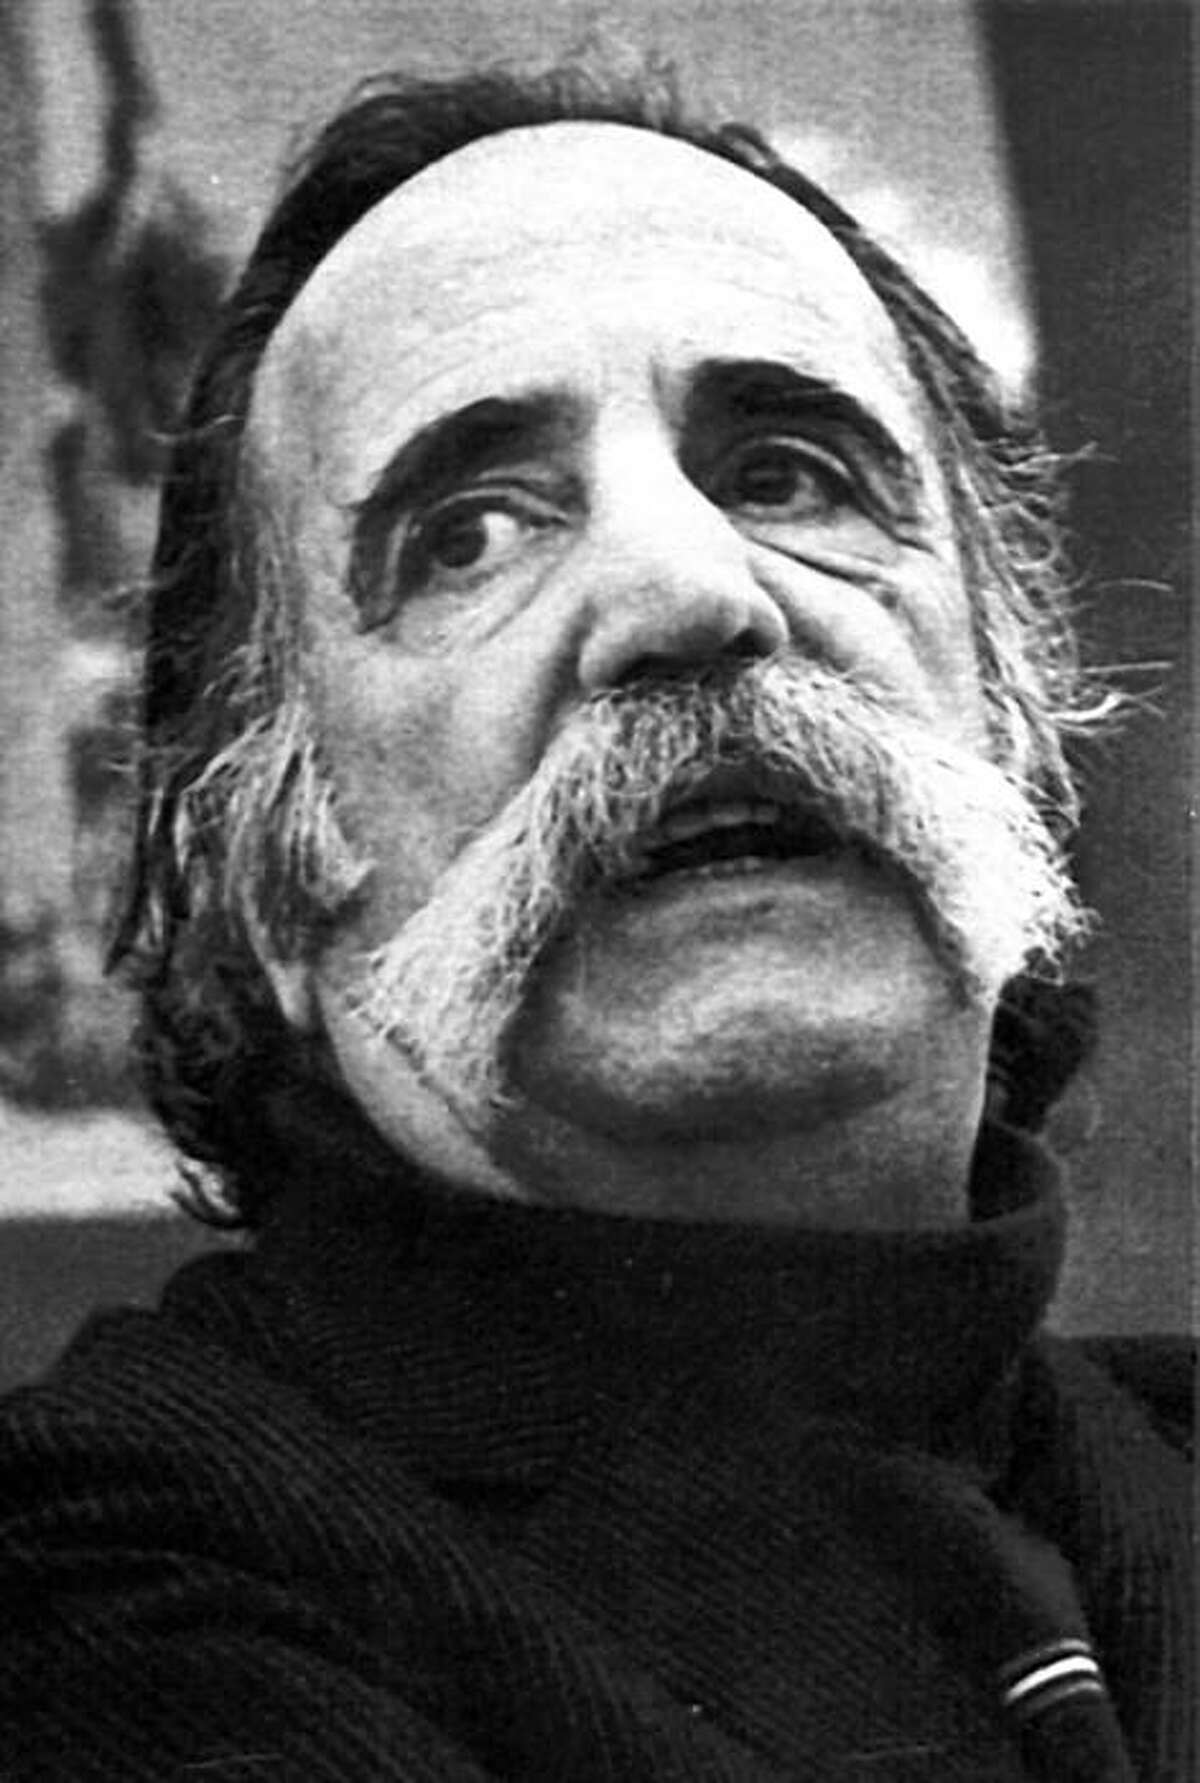 Undated file photograph of Pulitzer Prize winning author William Saroyan. Saroyan who was one of the most respected authors in the world winning a Pulitzer, an Oscar and dozens of writing awards while telling stories about his youth living in Fresno.